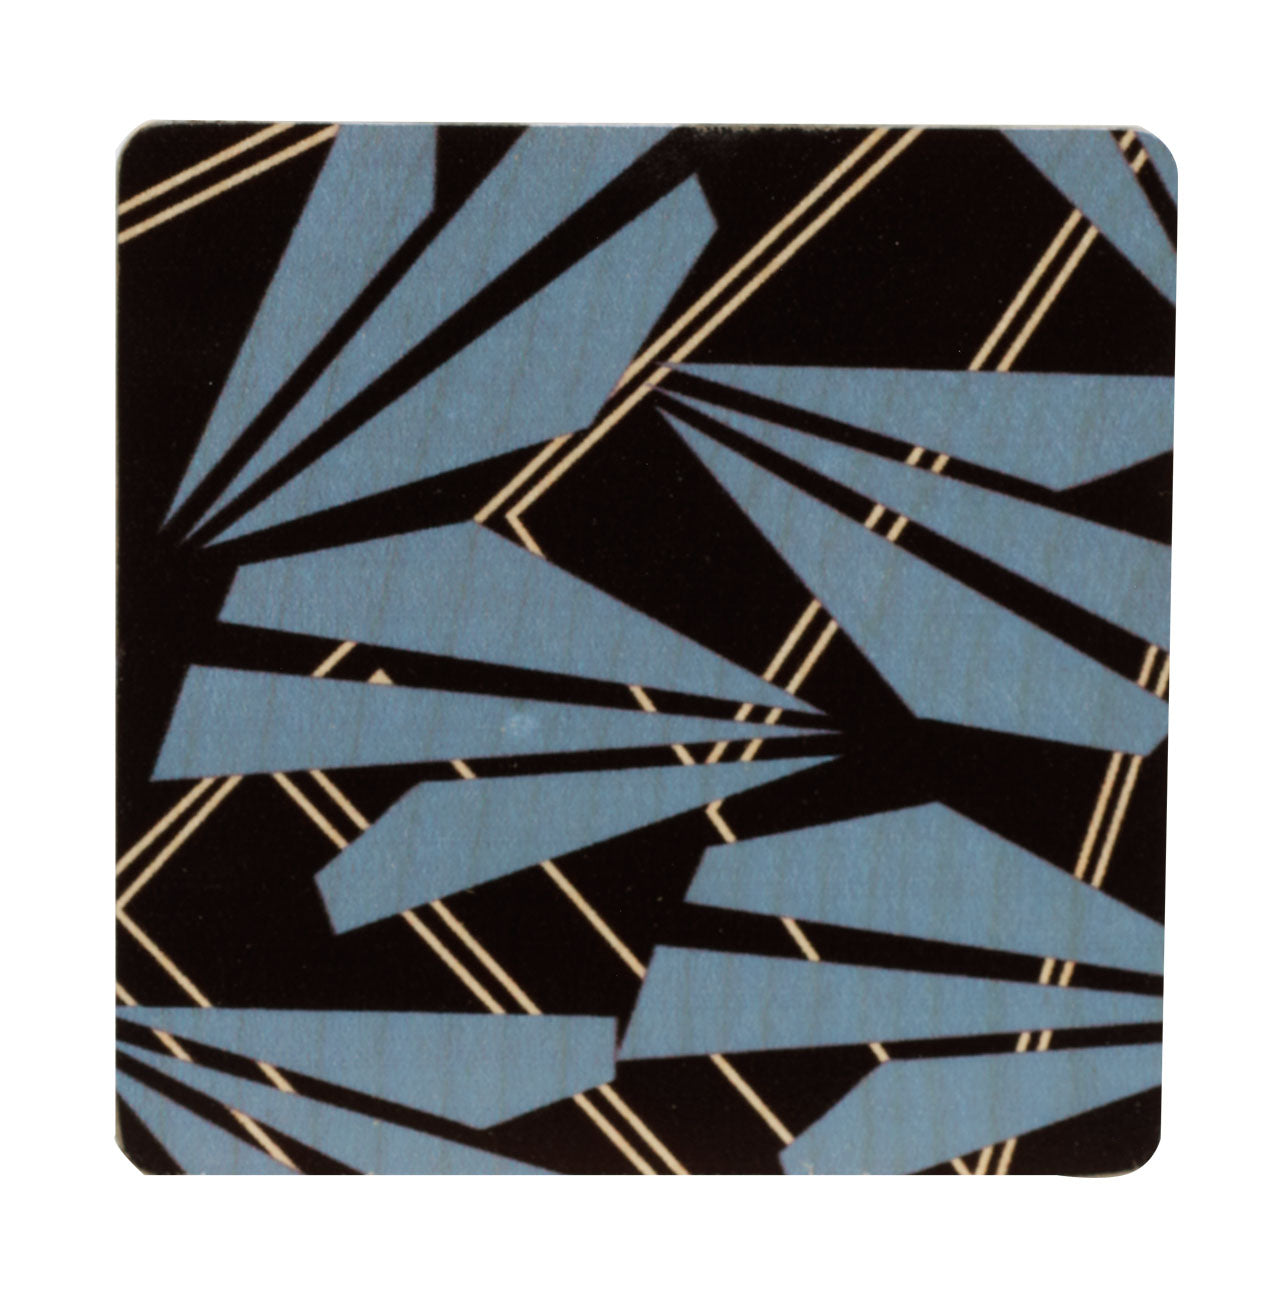 amelia black coasters, set of four